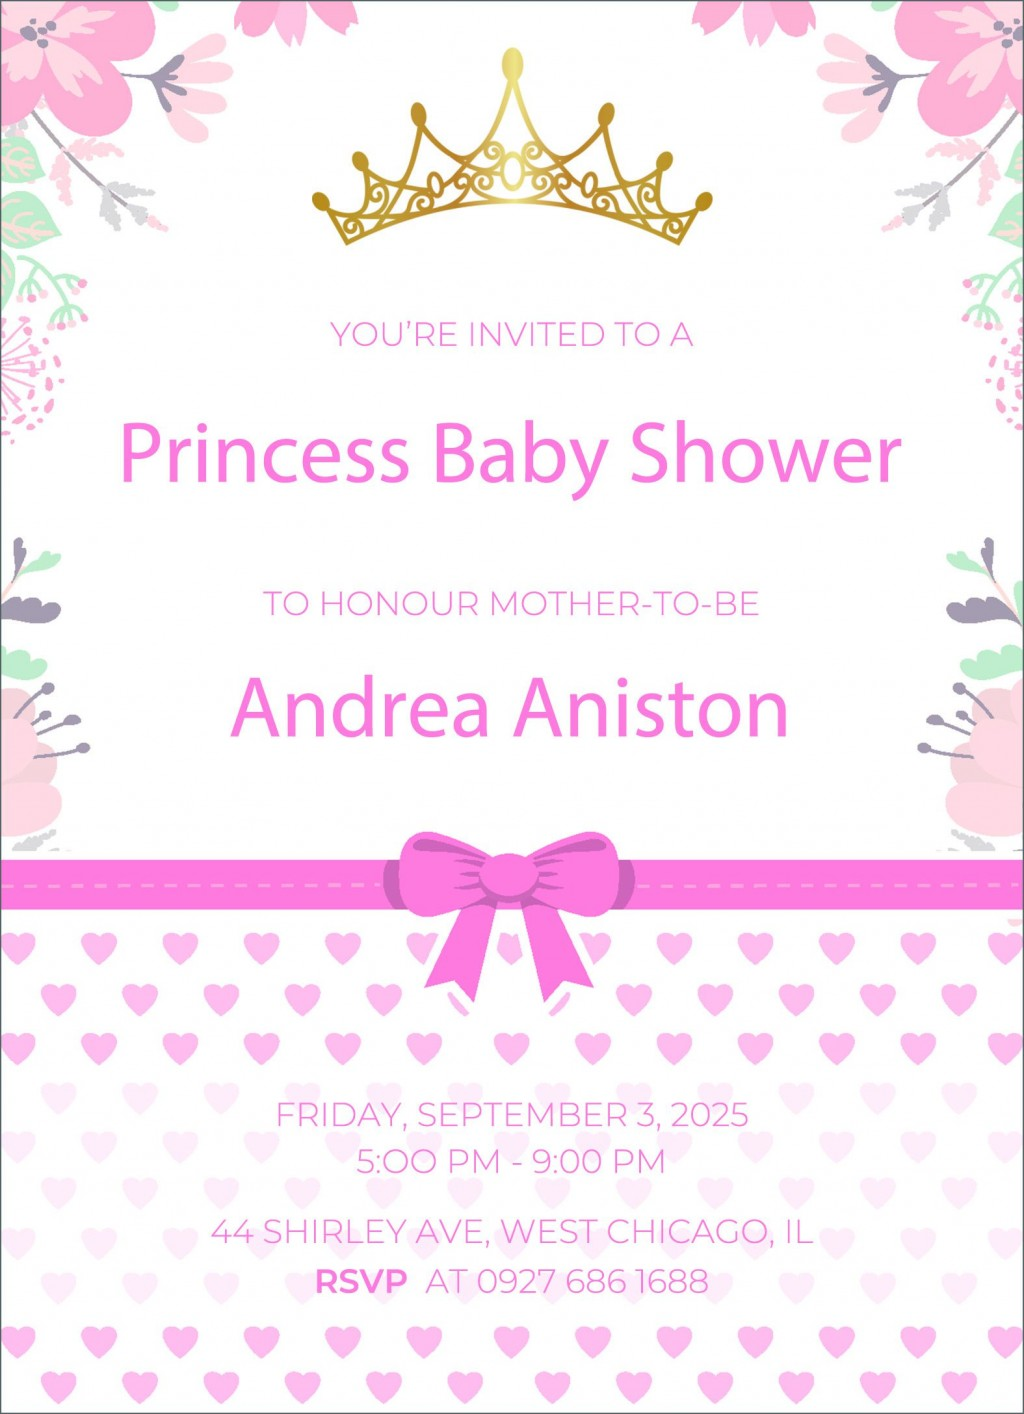 003 Amazing Baby Shower Invitation Template Word Image  Office Wording Sample Work DownloadLarge